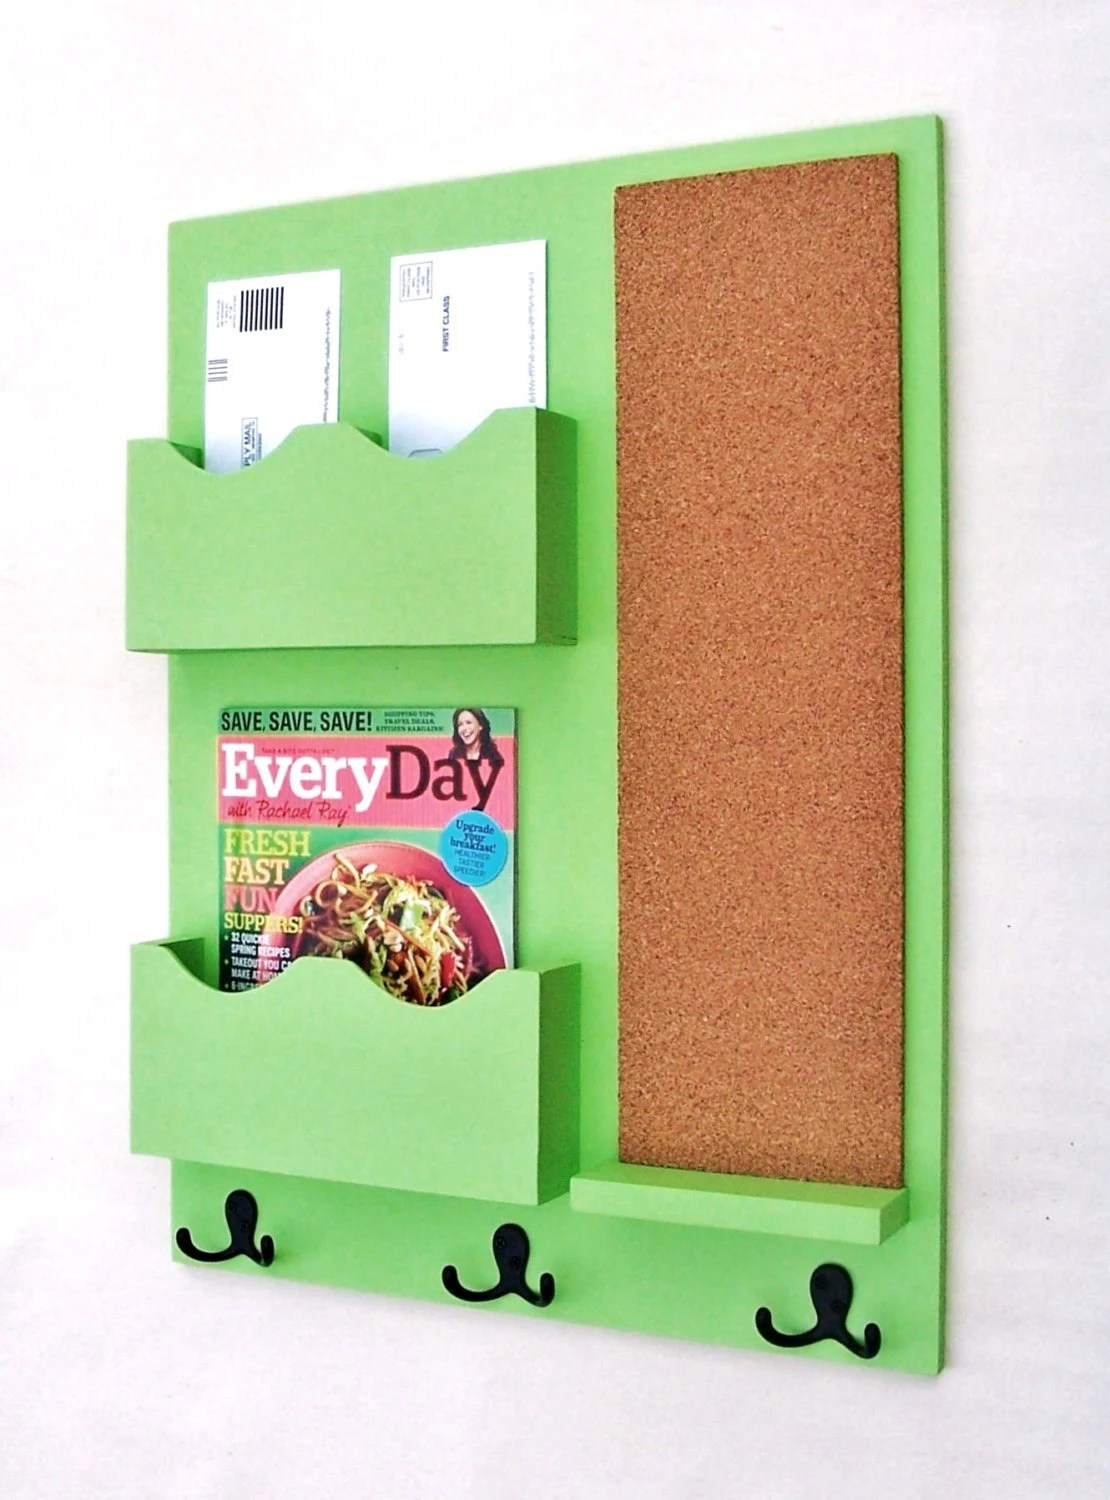 Mail Organizer - Mail Holder - Letter Holder - Mail Sorter - Cork Board - Key Hooks - Coat Hooks - Key Hooks